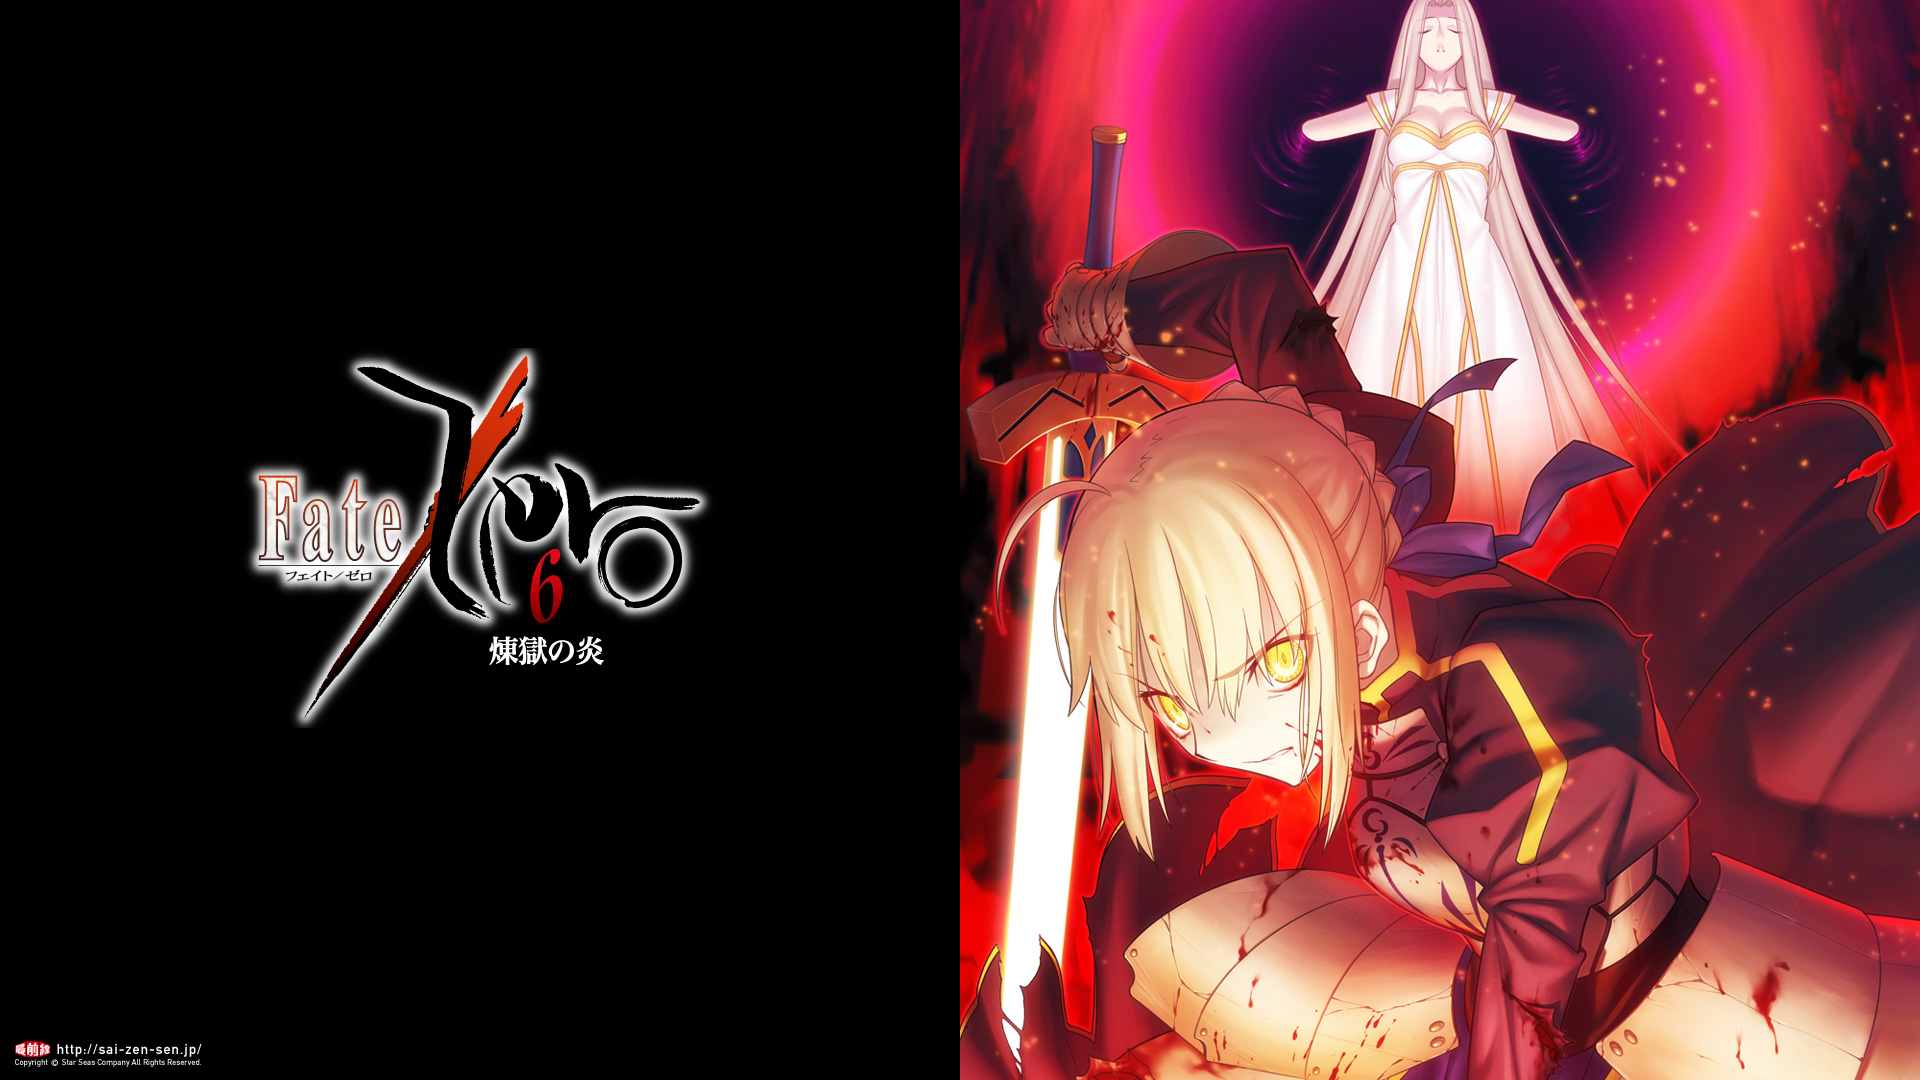 Fate Zero Download 星海社文庫 Fate Zero 最前線